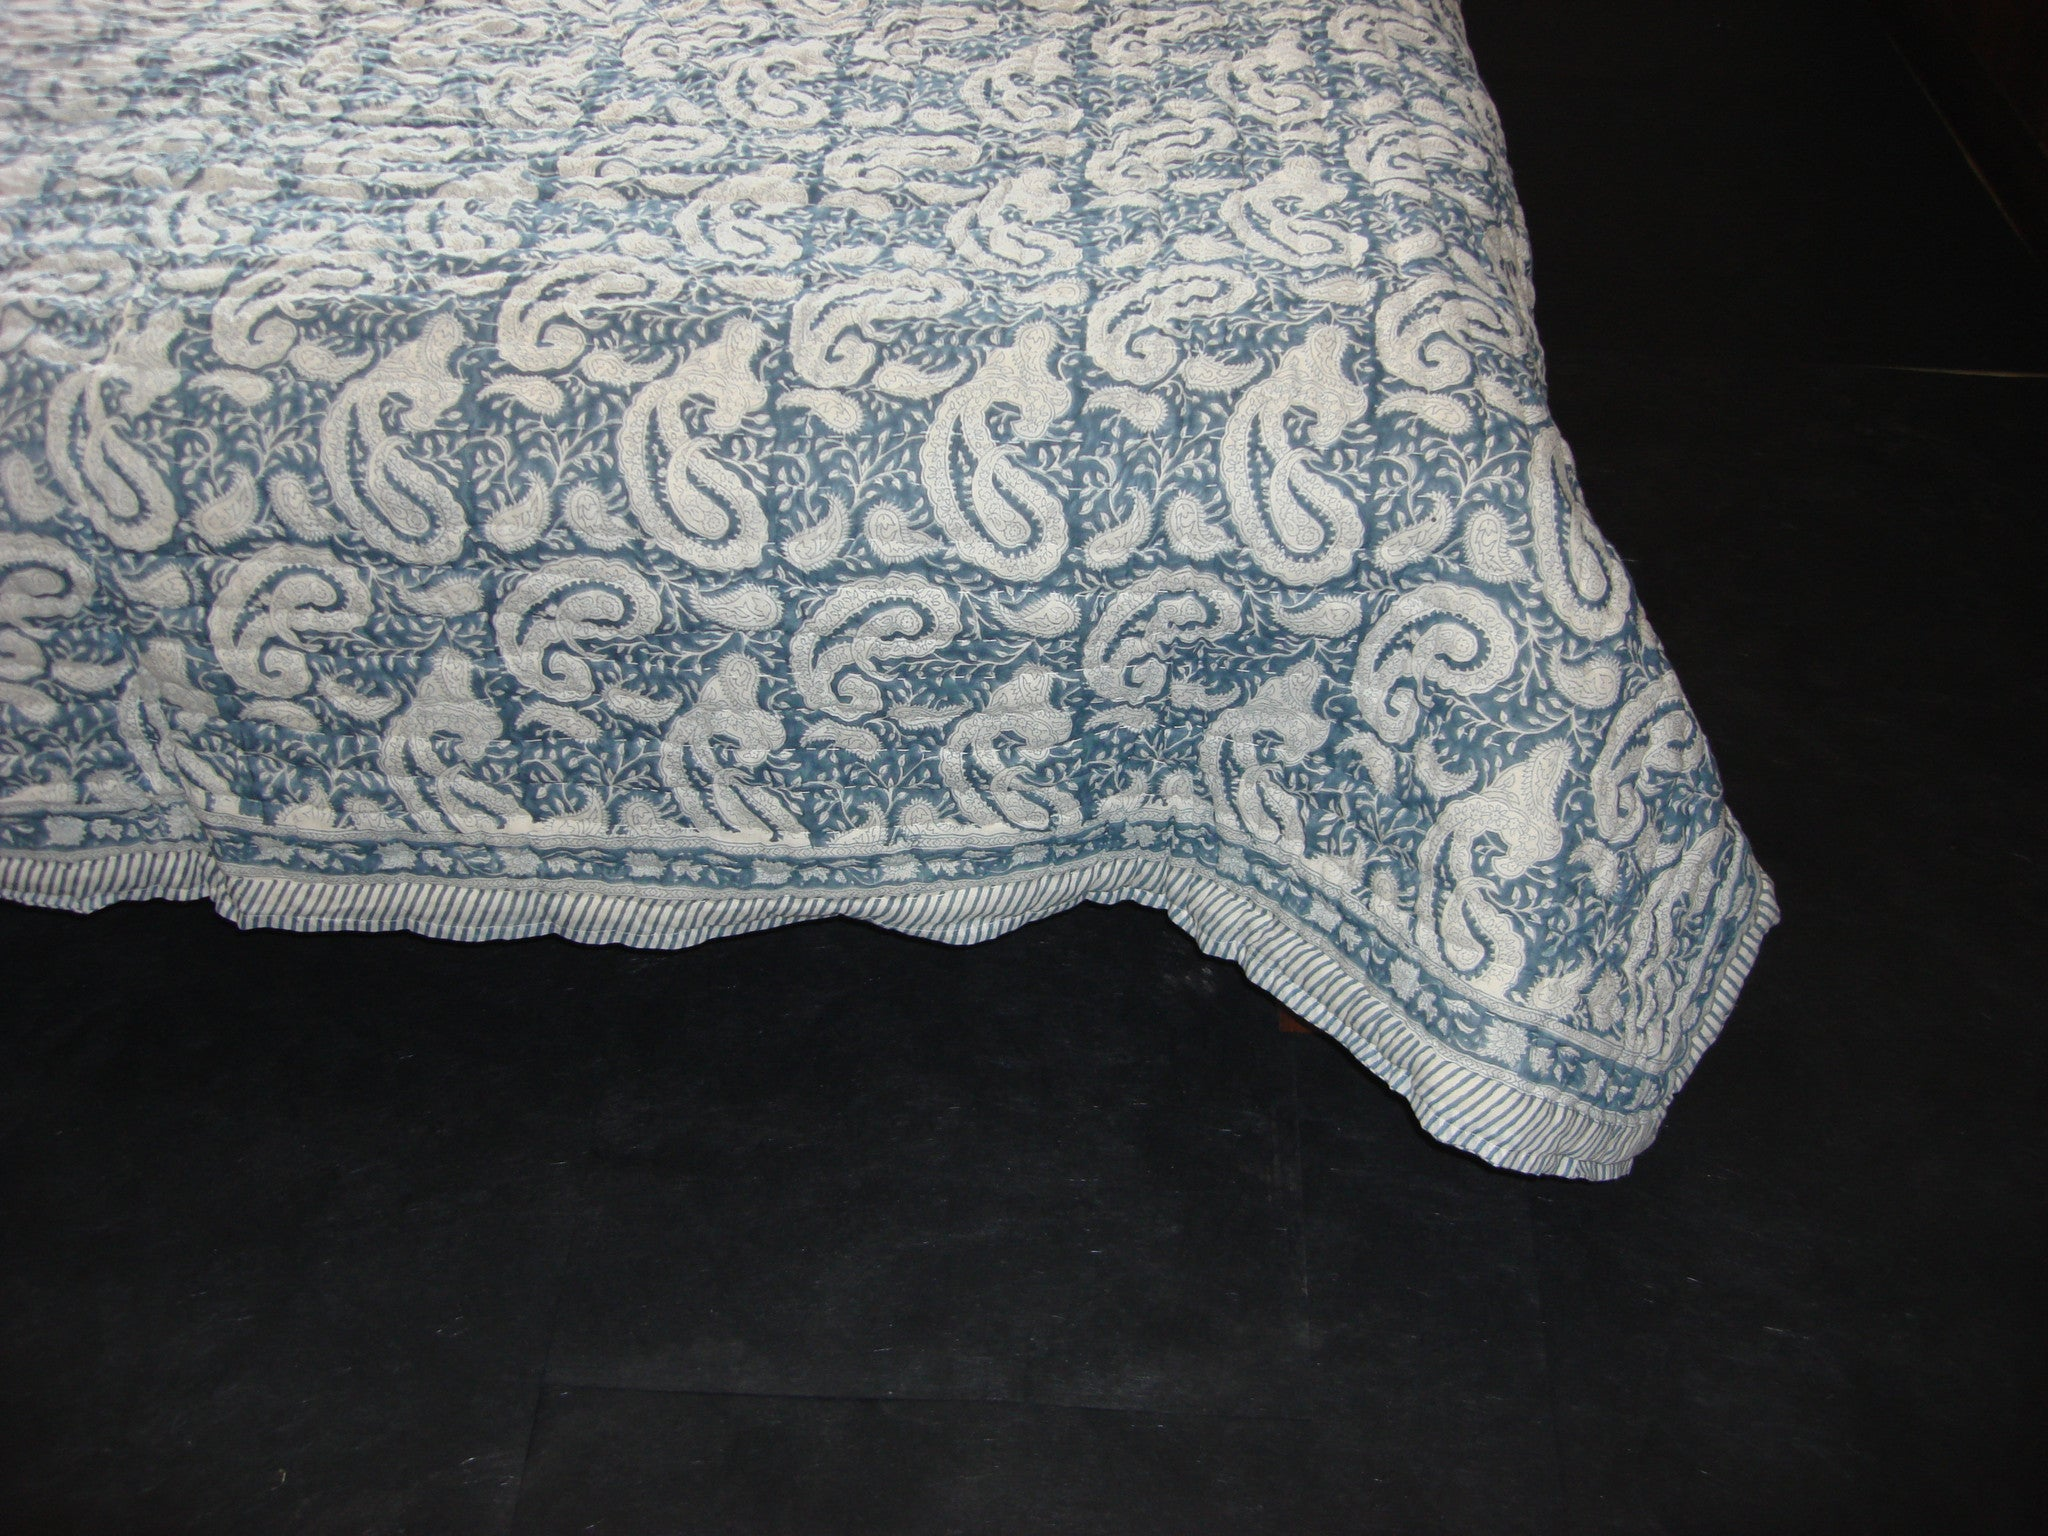 QBP 103 - Handmade, cotton, block printed quilt with paisleys in indigo blue - Pentagon Crafts